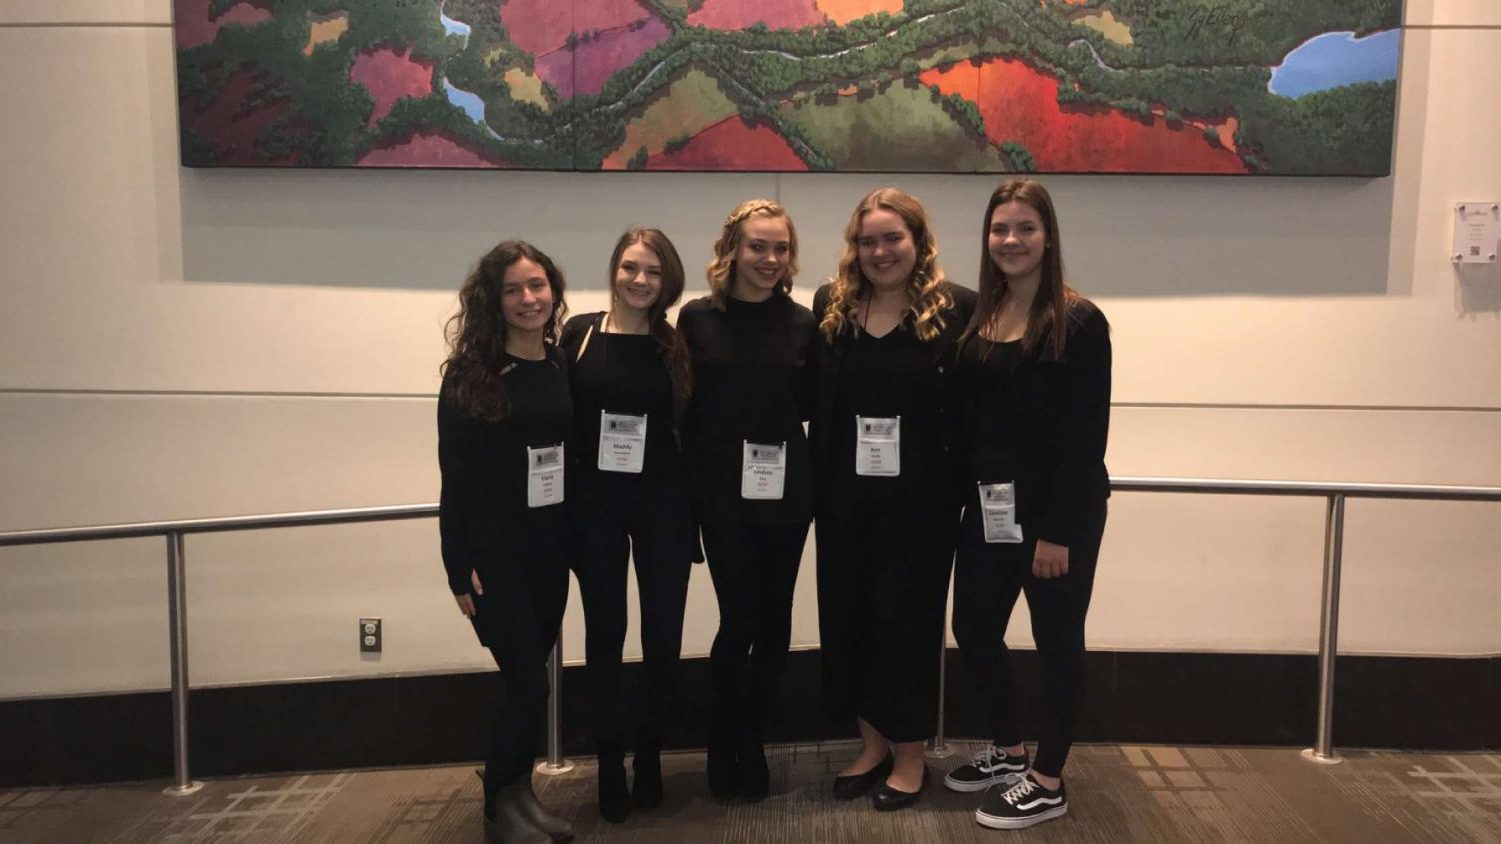 Students pose in their all-black outfits, which are required for all technical and performance events.